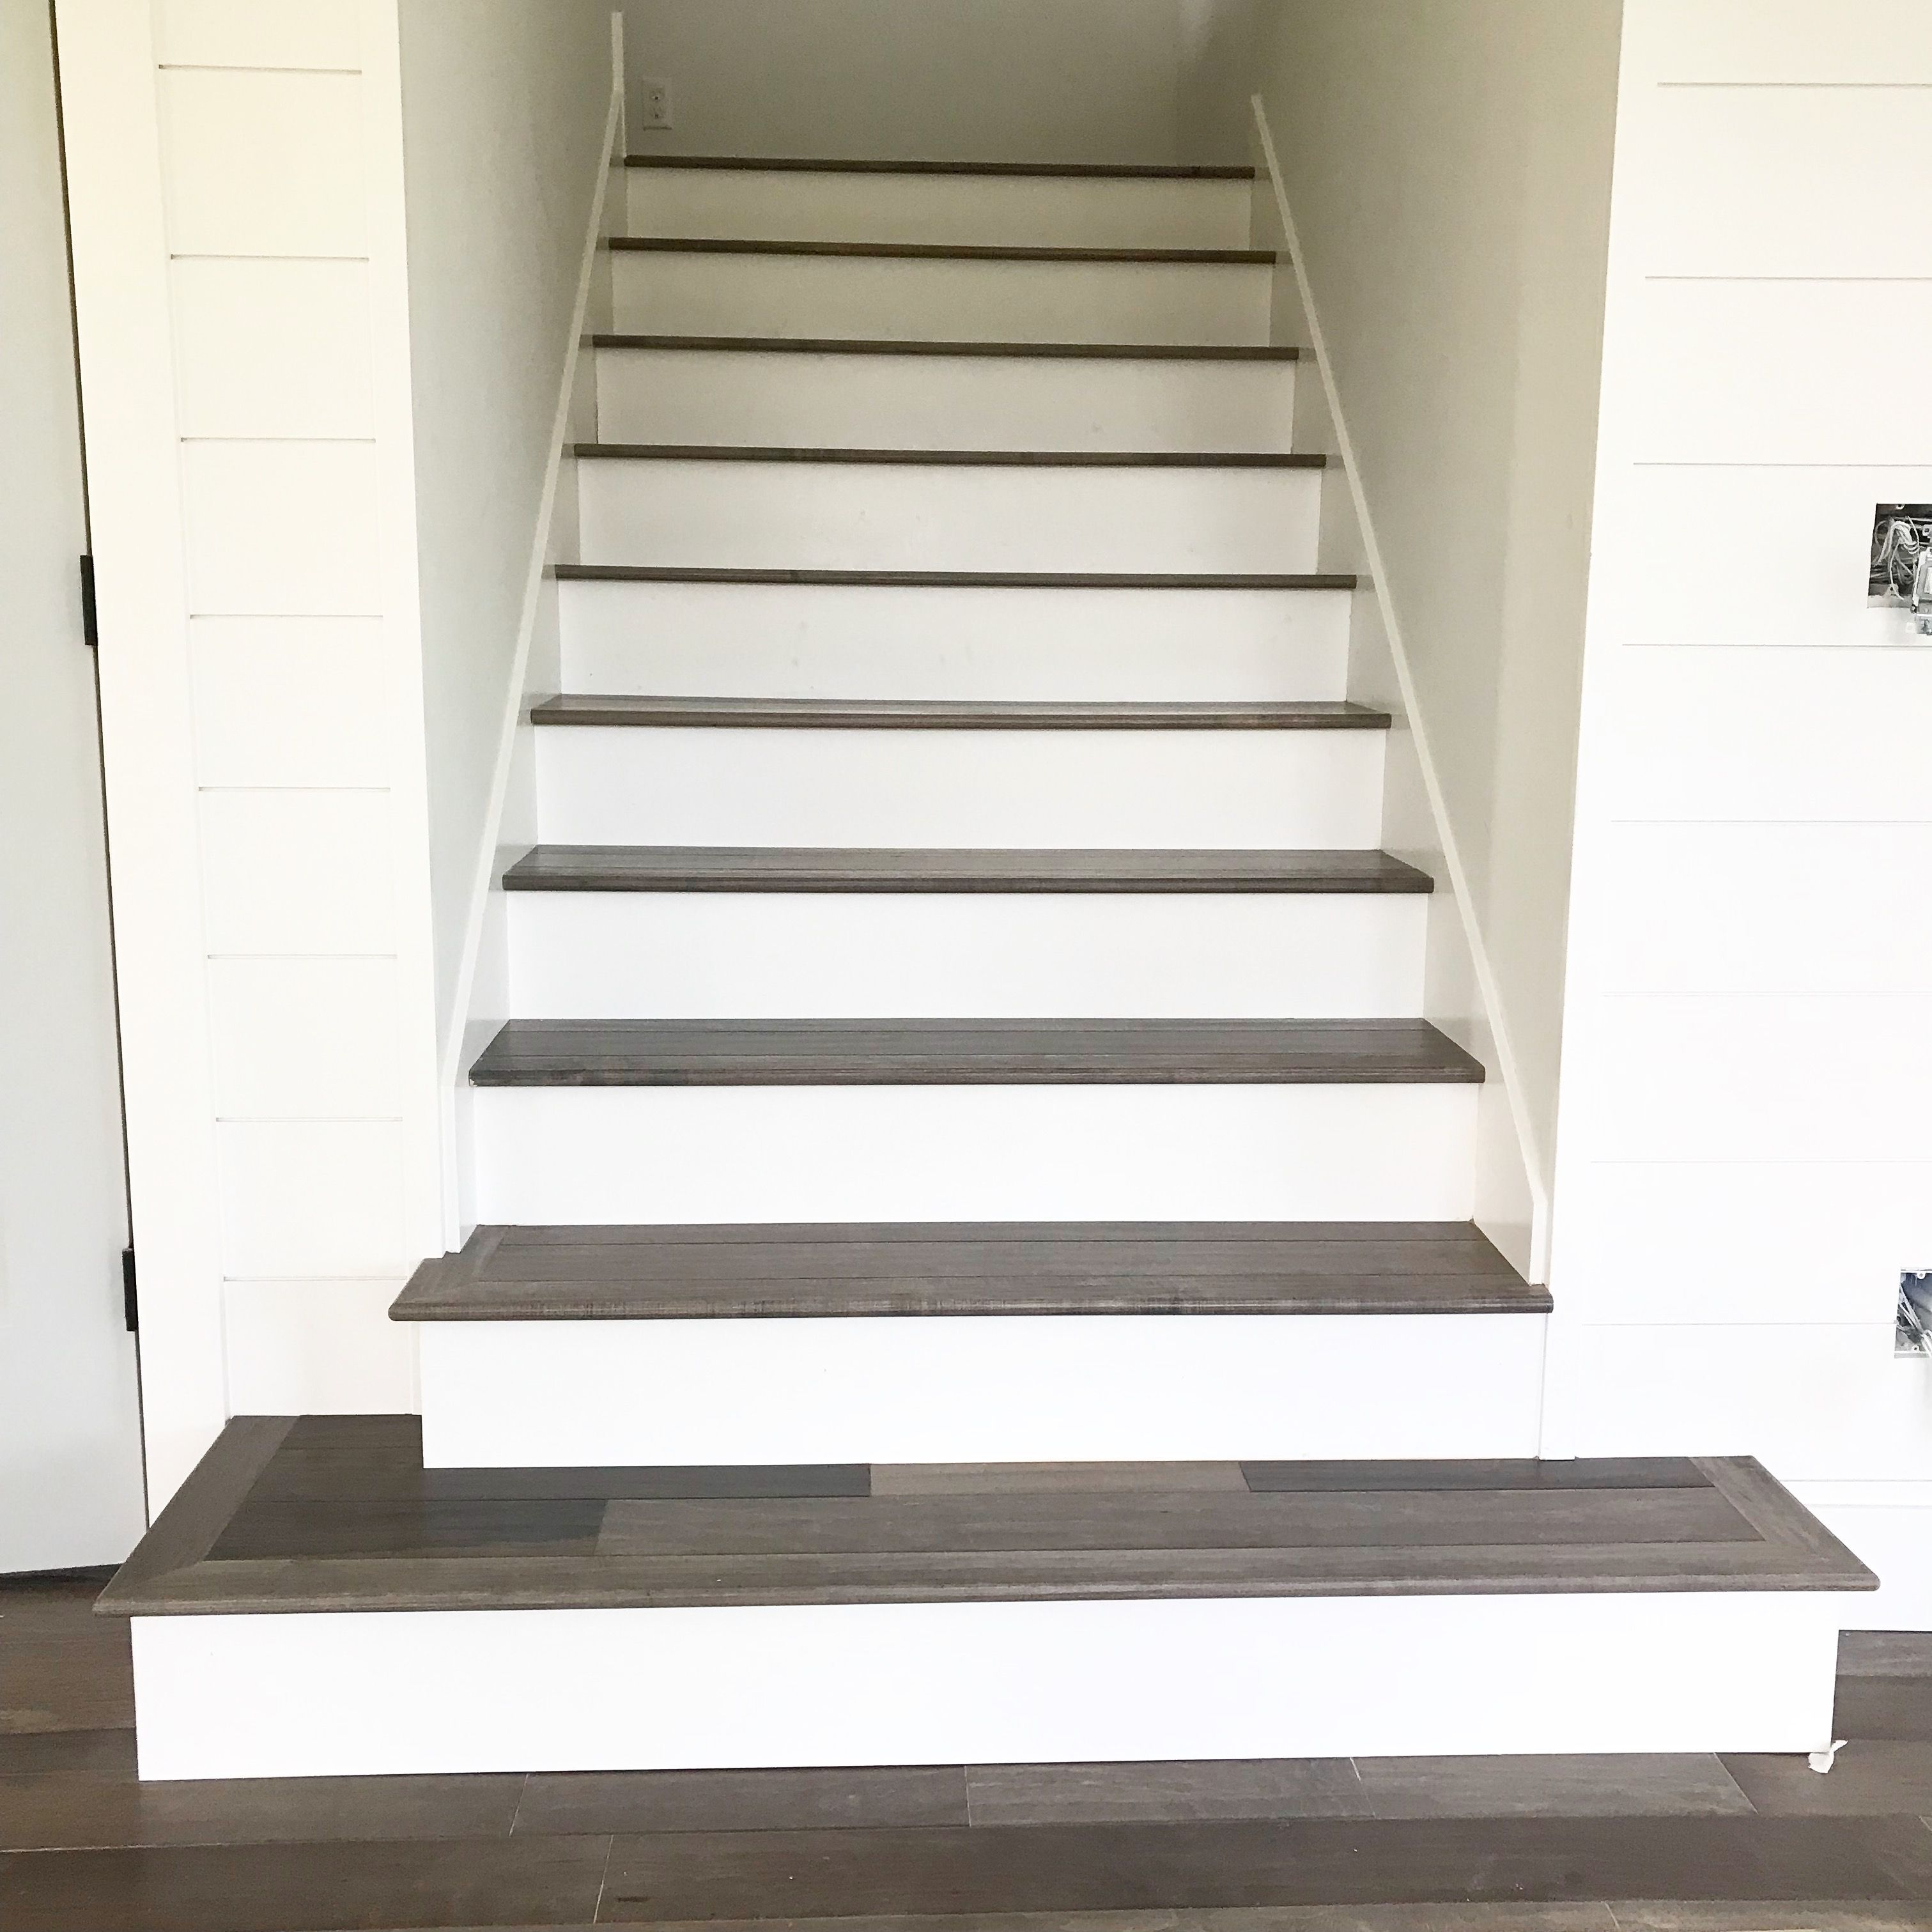 Farmhouse Wood Stairs Hardwood Stairs White Stair Risers Wood | Wood Steps With White Risers | Timber | Wood Stair | Before And After | Color | Stair Tread